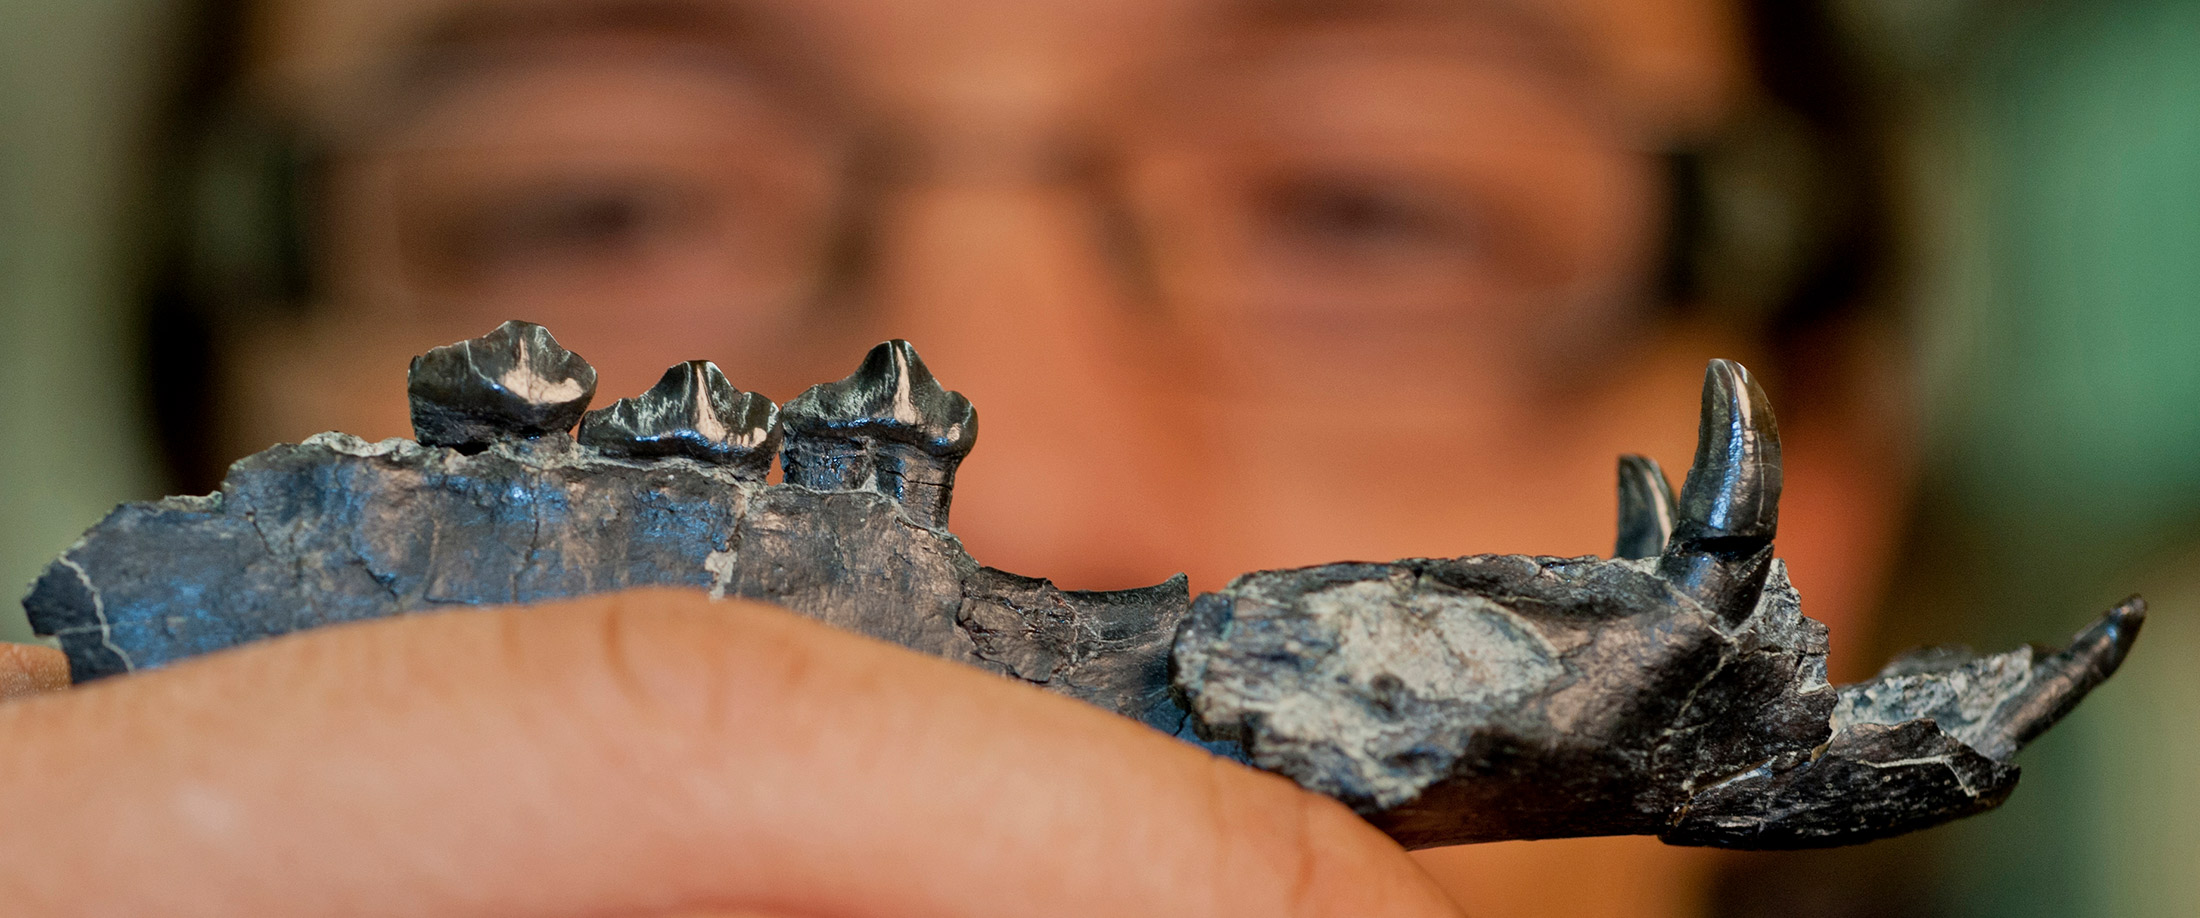 Aldo Rincon displays the jaw of the 20-million-year-old camel